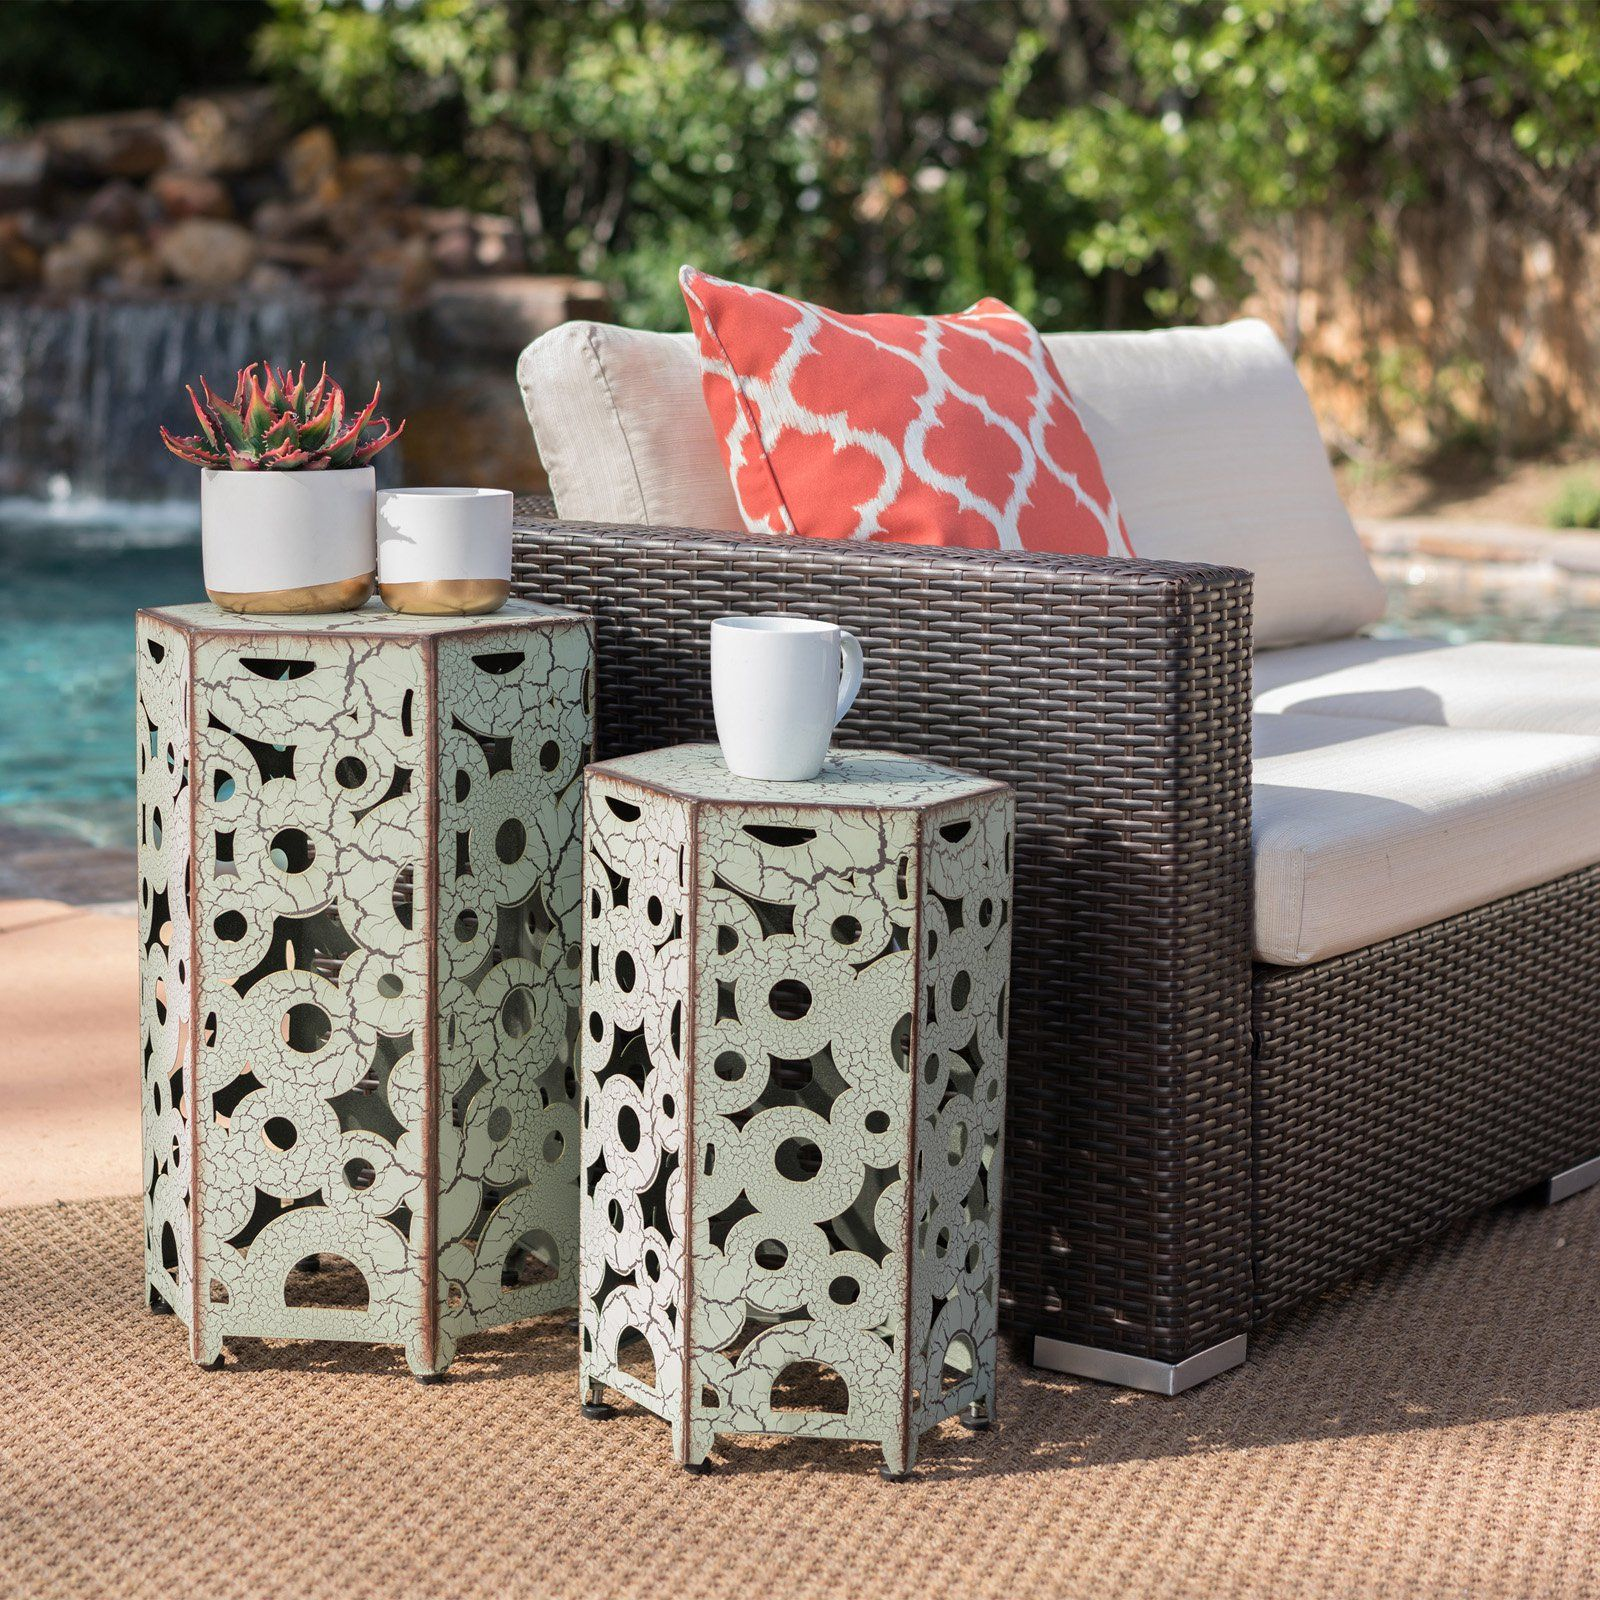 Free Shipping Buy Coral Coast 2 Piece Nesting Table At Walmart Com With Images Iron Accent Table Iron Accents Nesting Tables